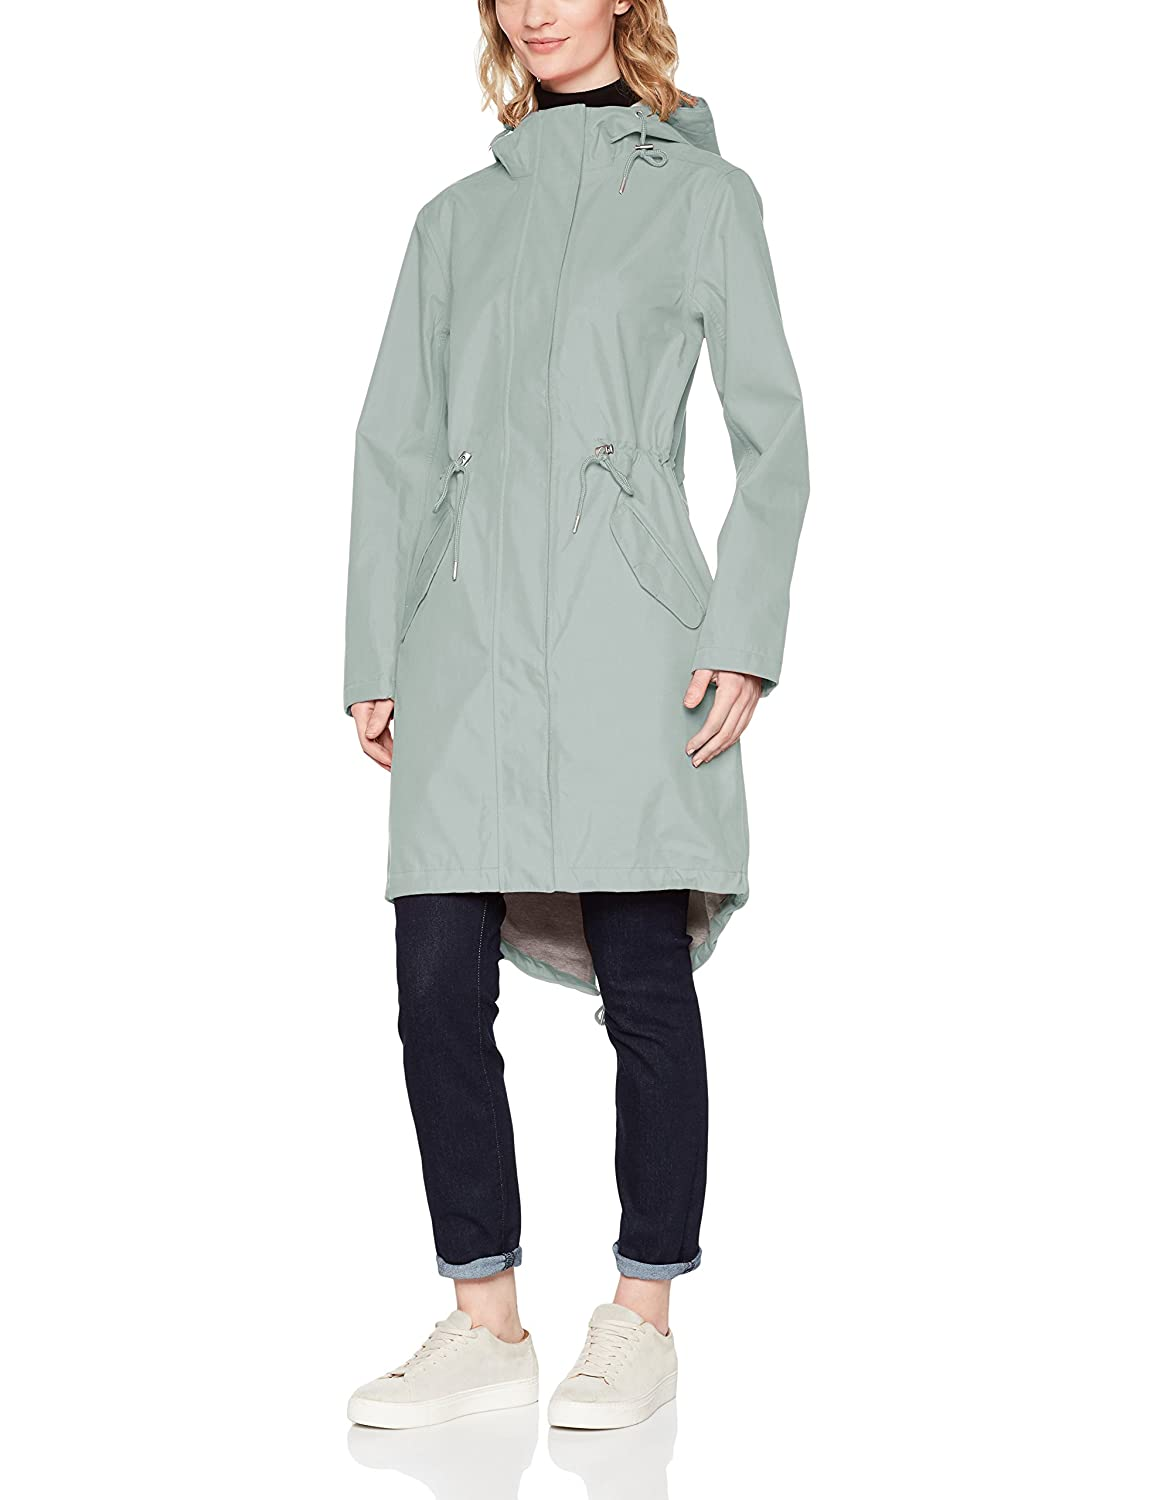 TALLA 42. Ilse Jacobsen Chaqueta Impermeable para Mujer